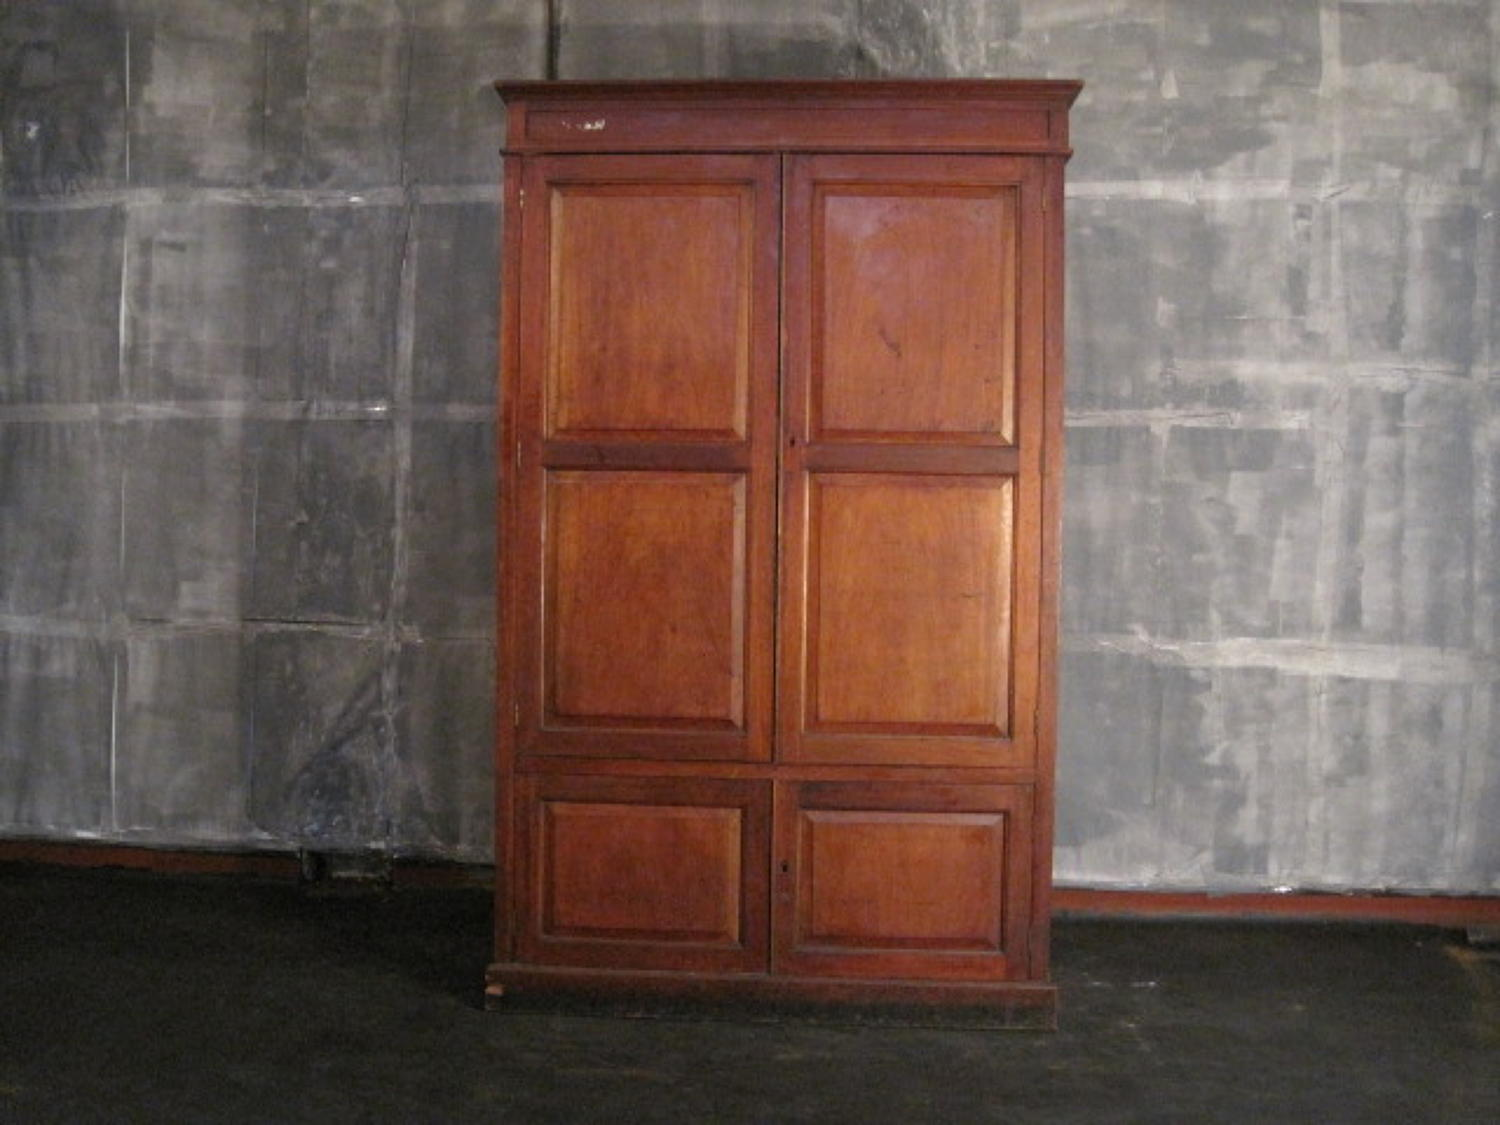 Vintage mahogany school or office cupboard